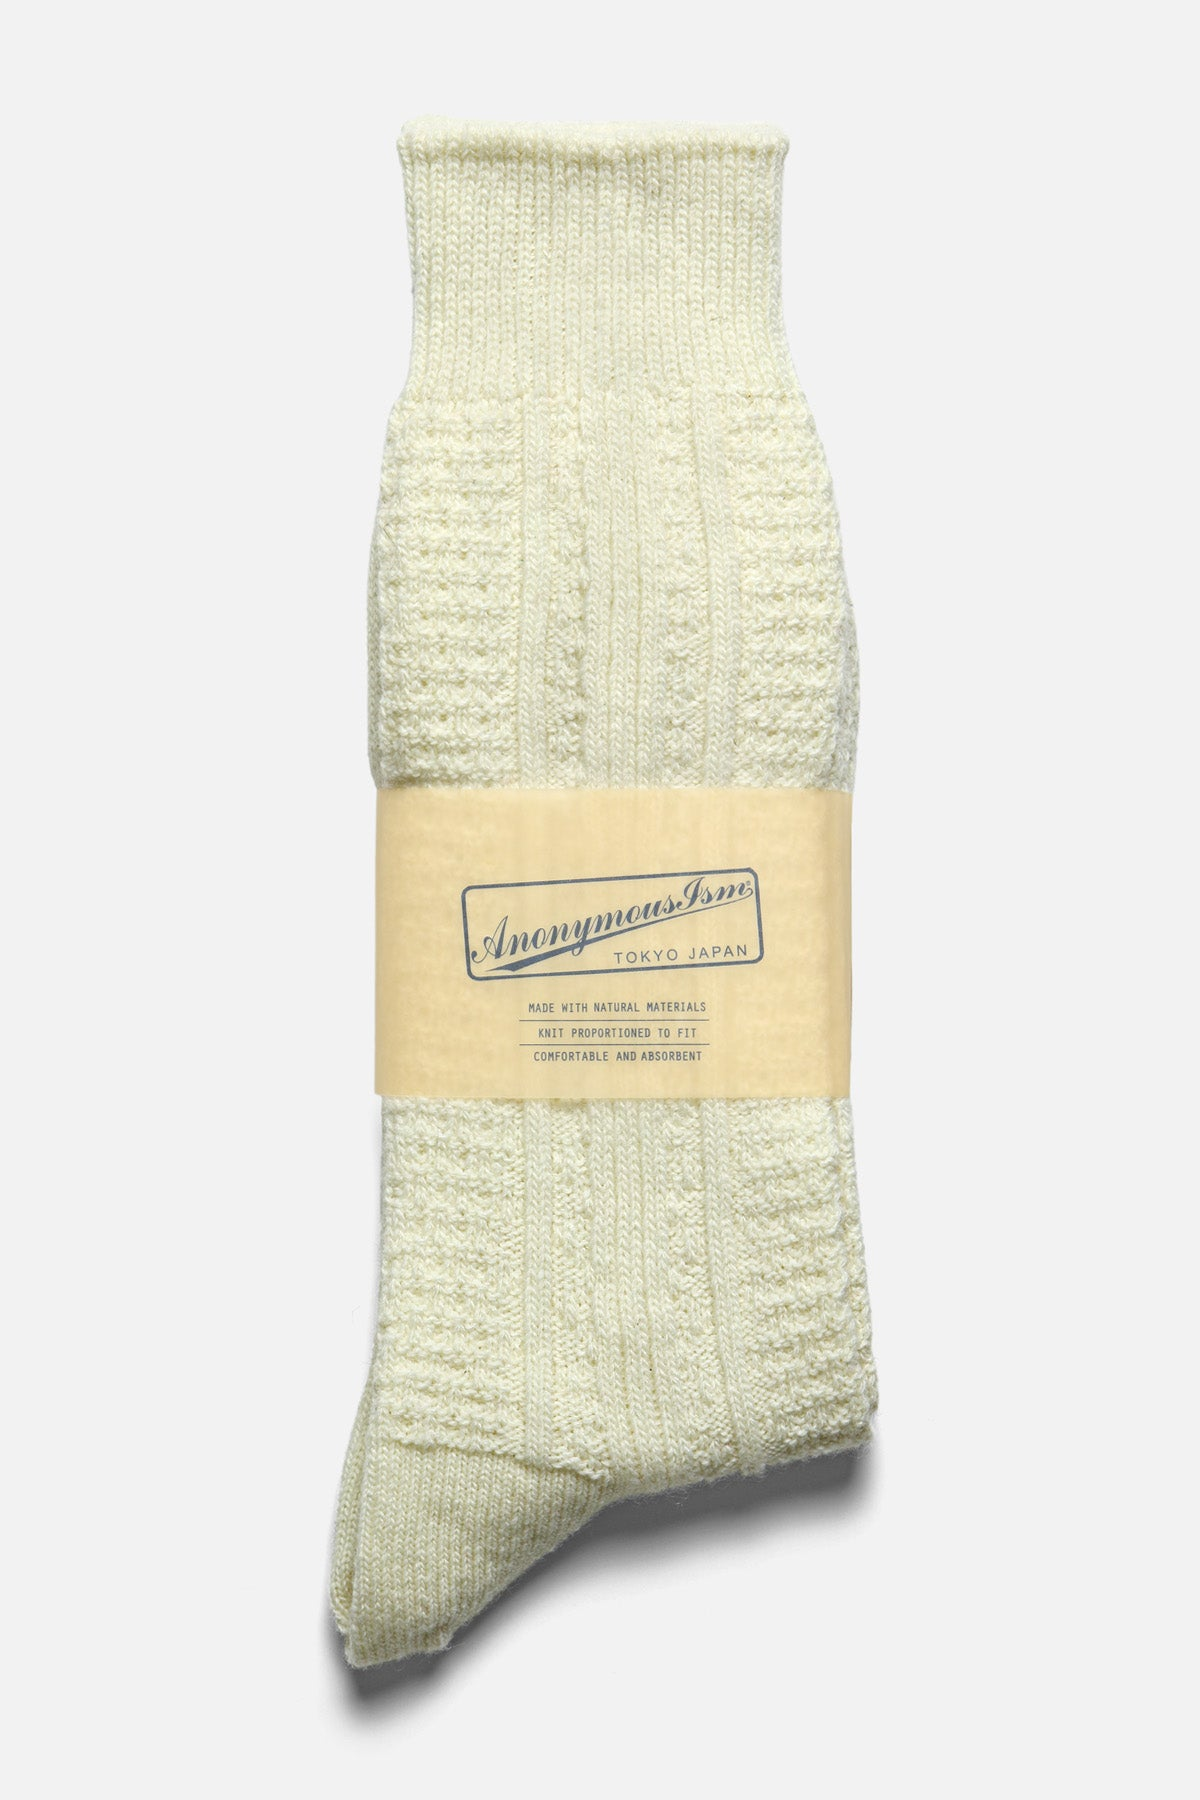 ANONYMOUS ISM - CASHMERE WOOL LINK CREW IN OFF WHITE - Fortune Goods